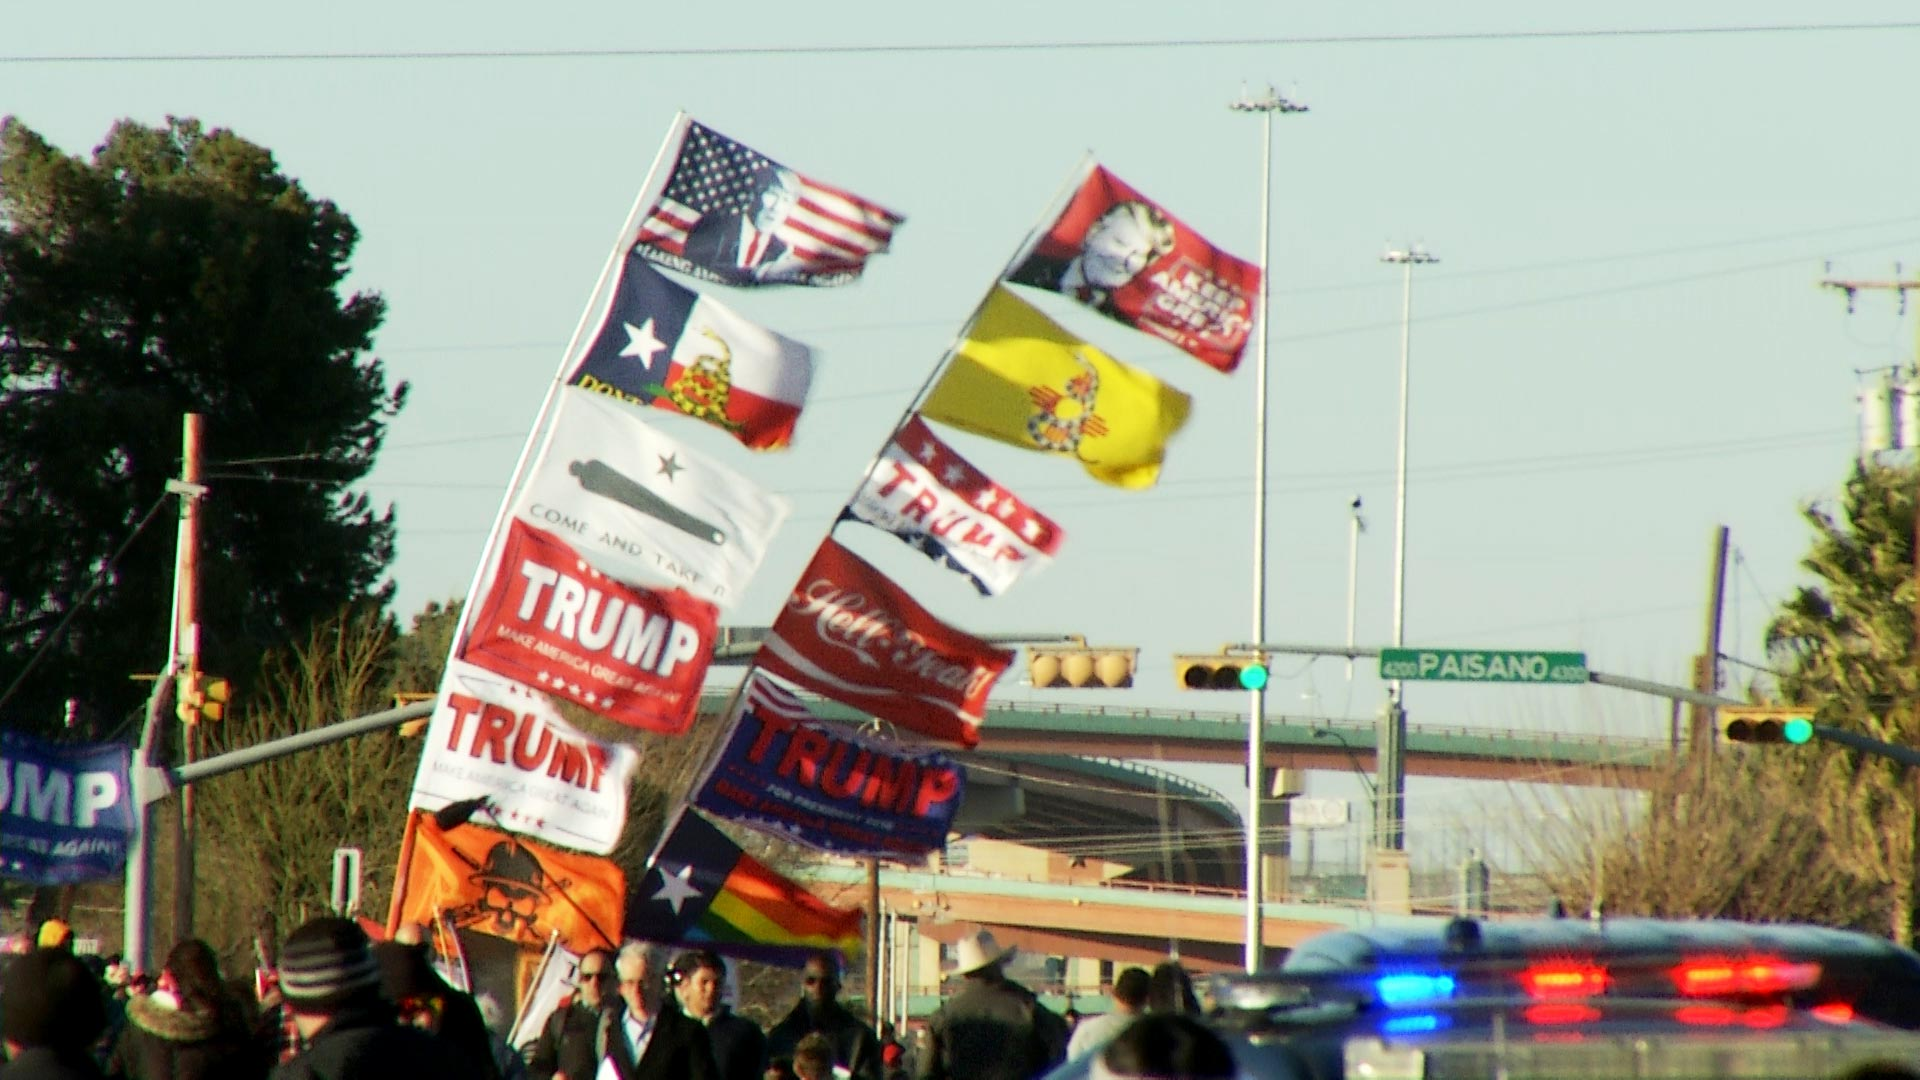 Flags flying in support of President Trump blow in the wind outside the Coliseum Box Office in El Paso, Texas where President Trump held a campaign rally on February 11, 2019.